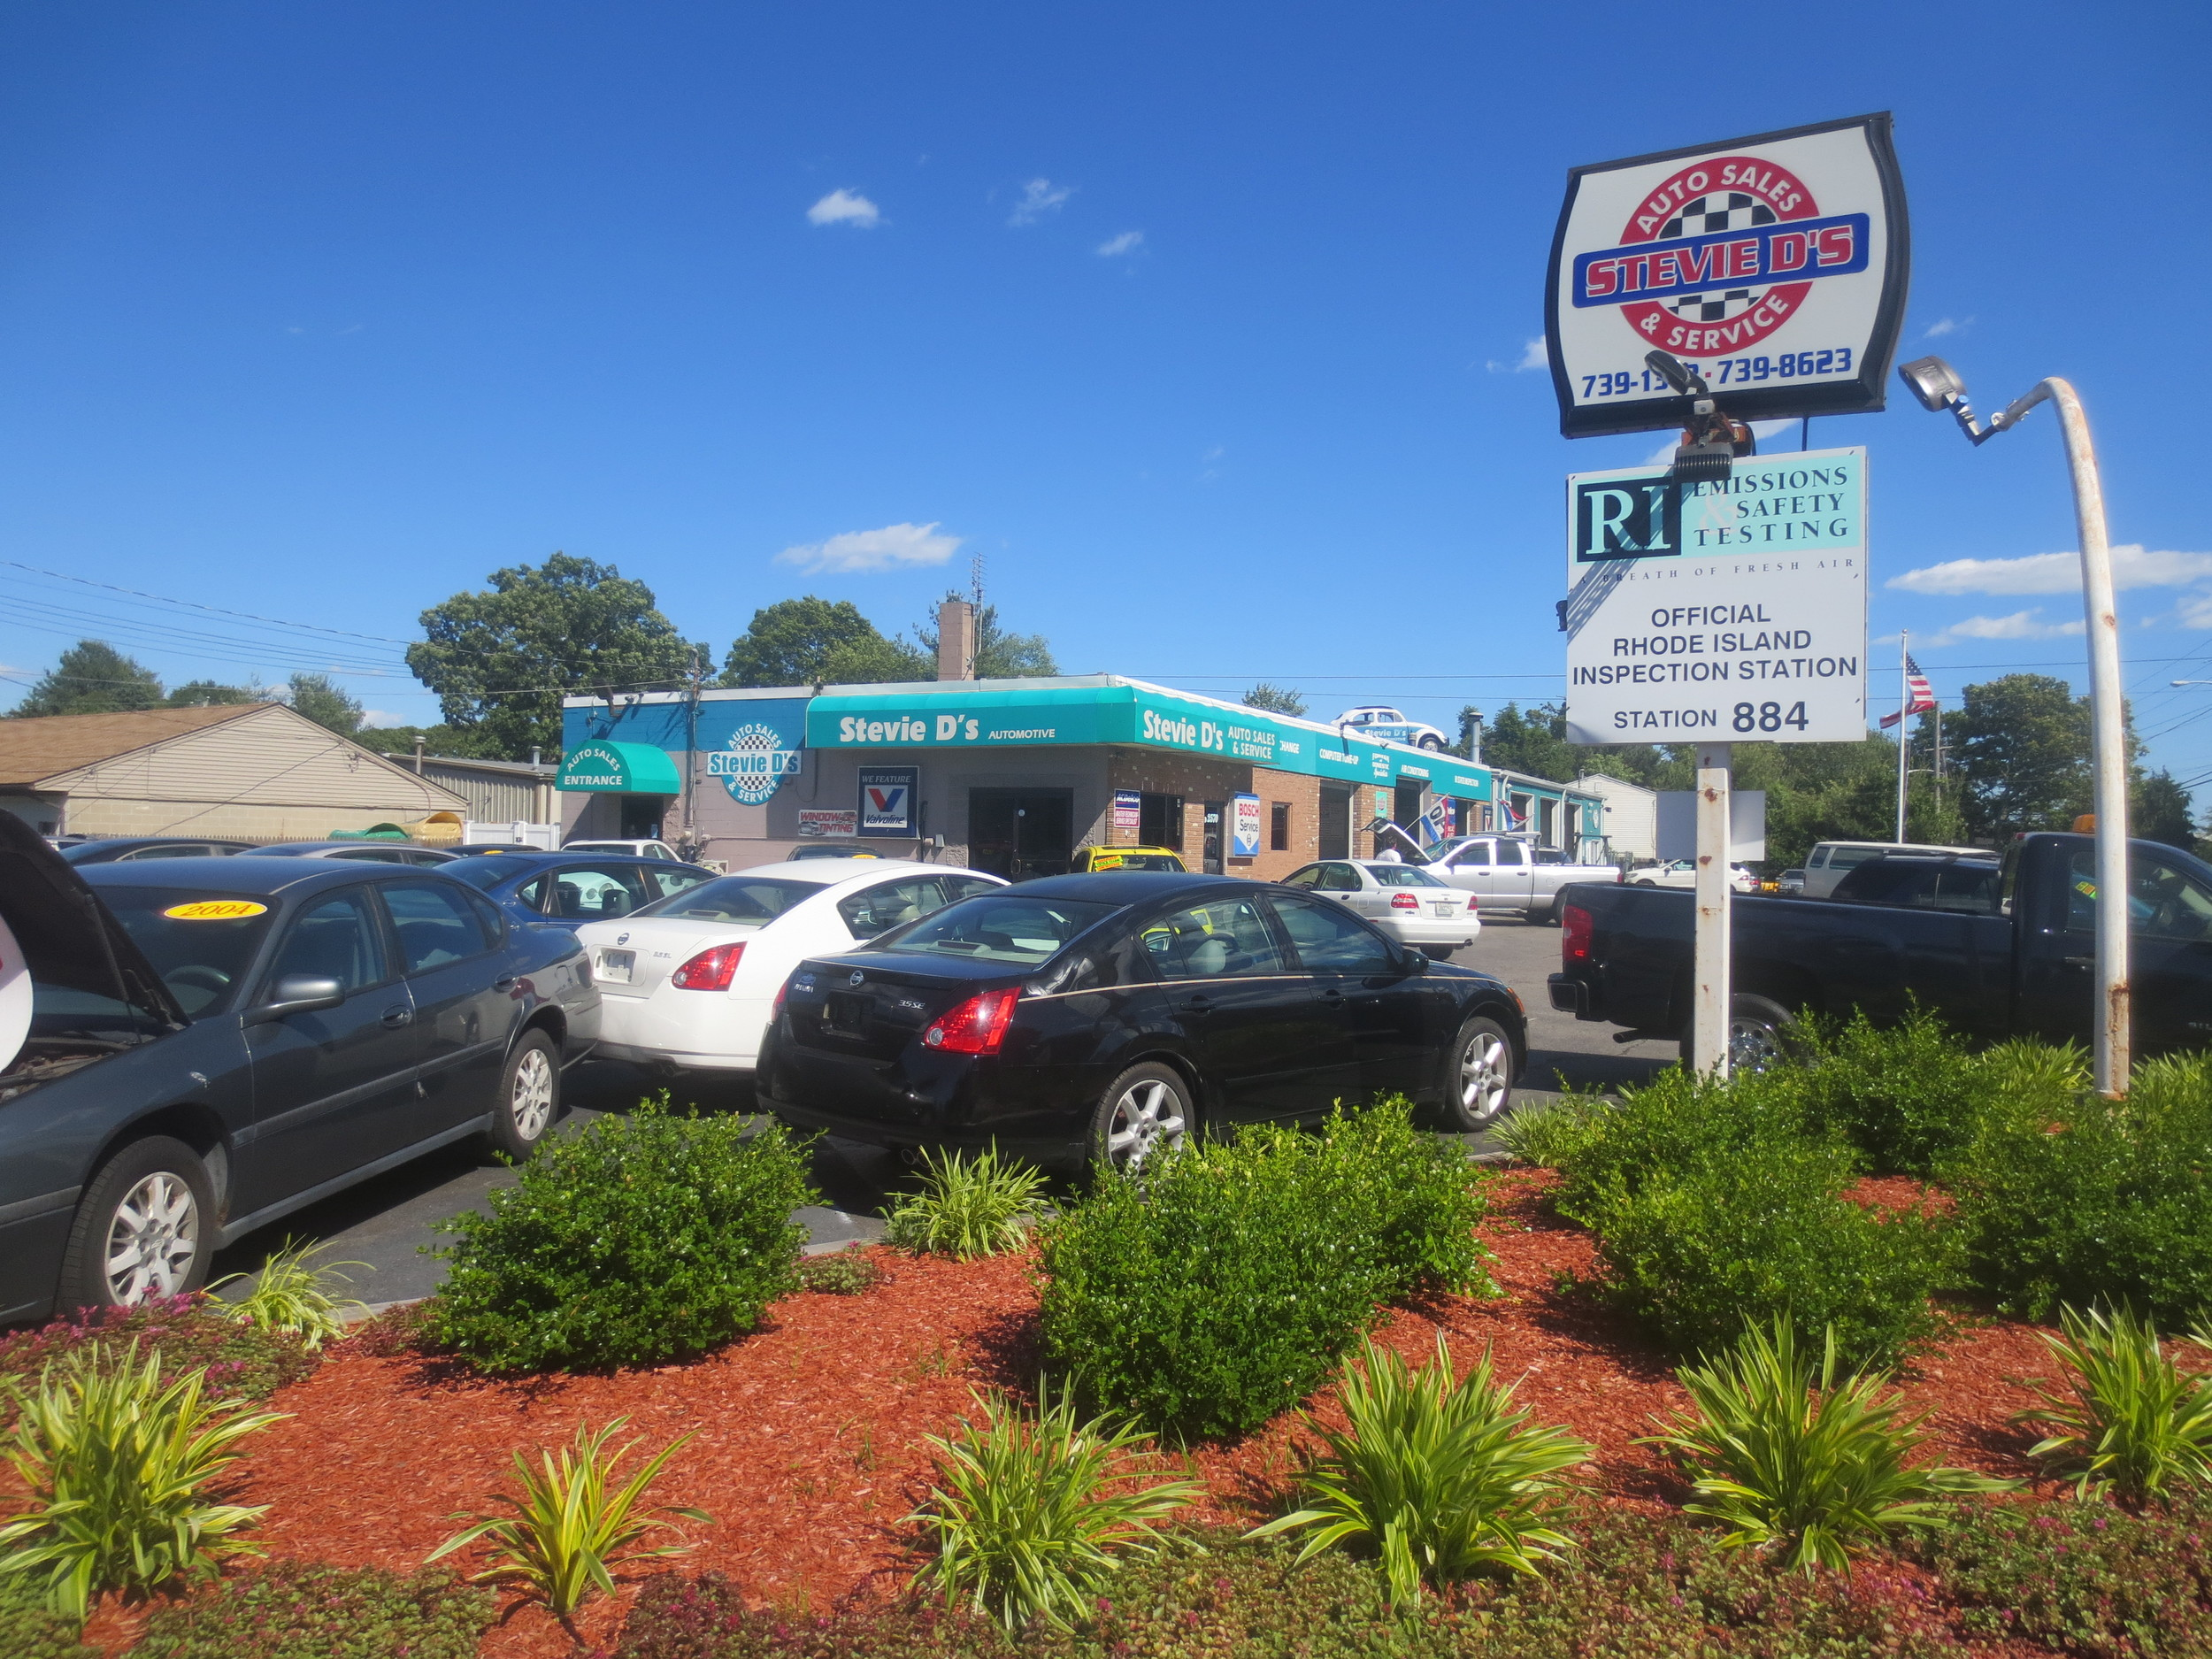 Come tour the lot at Stevie D's off Warwick Avenue for an ever-changing inventory of previously-used vehicles ~ there is something here for every budget, lifestyle and wishlist.